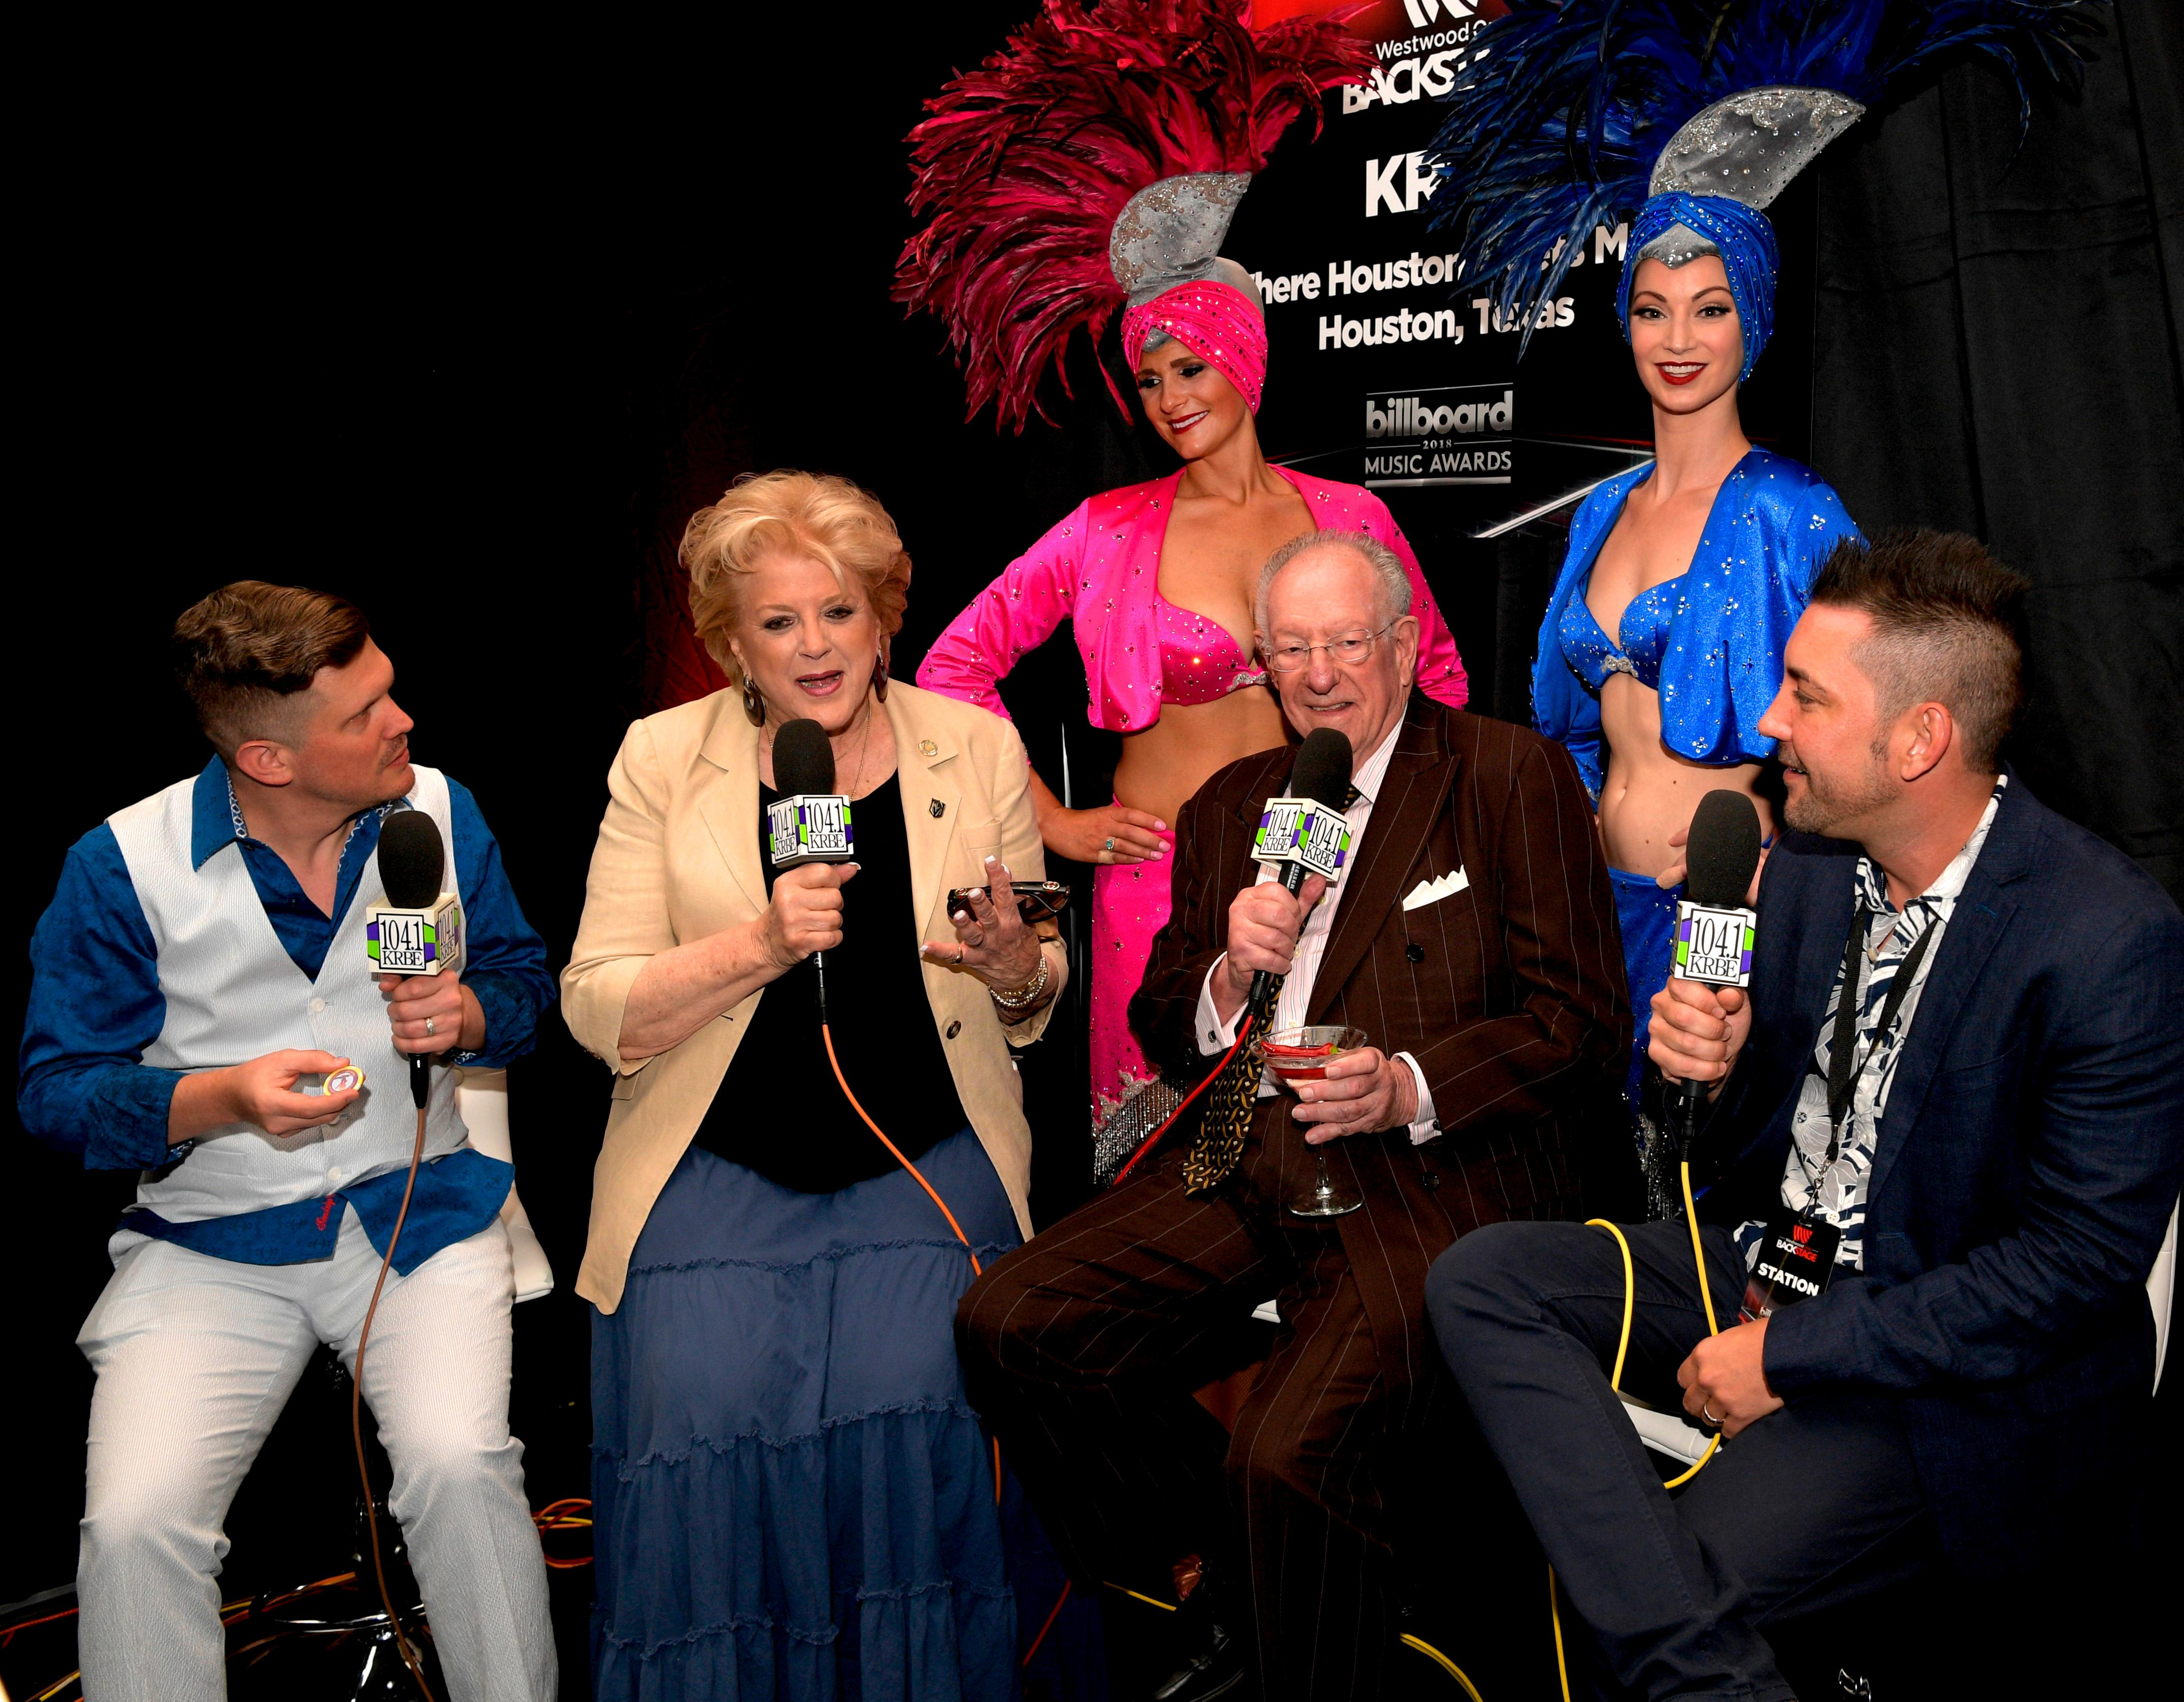 Las Vegas Mayor Carolyn G. Goodman and former Las Vegas Mayor Oscar B. Goodman are interviewed by KRBL radio from Houston, Texas at the Billboard Music Awards Radio Row with representatives from across the country at the MGM Grand Hotel & Casino on the Las Vegas Strip. Saturday, May 19, 2018. CREDIT: Glenn Pinkerton/Las Vegas News Bureau